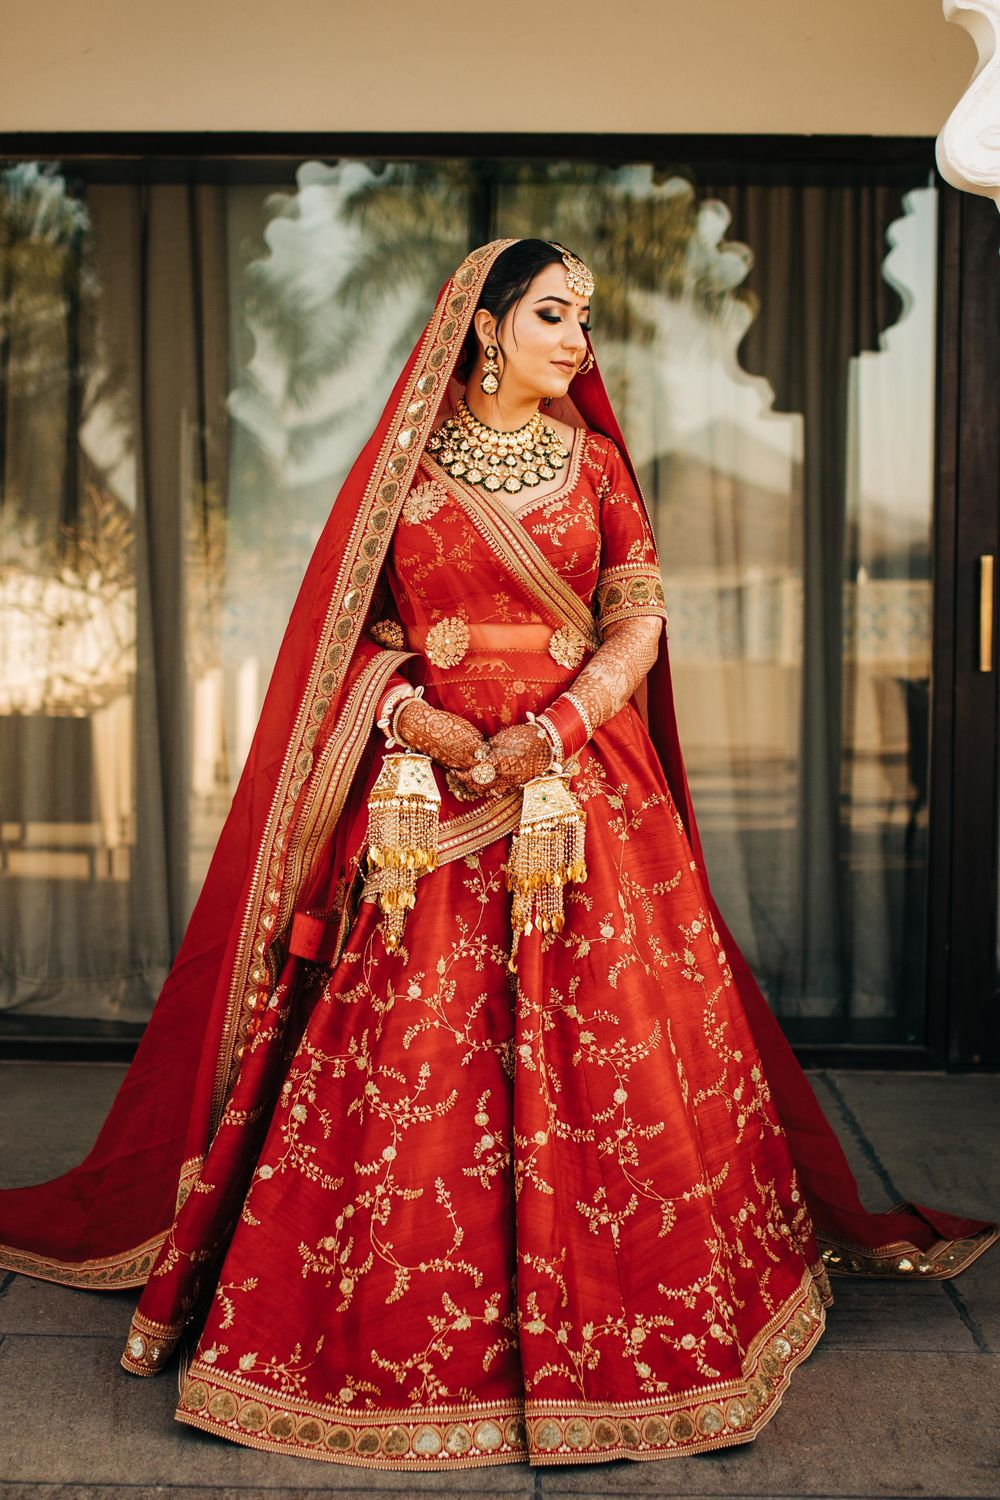 Photo of A bride dressed in red traditional lehenga